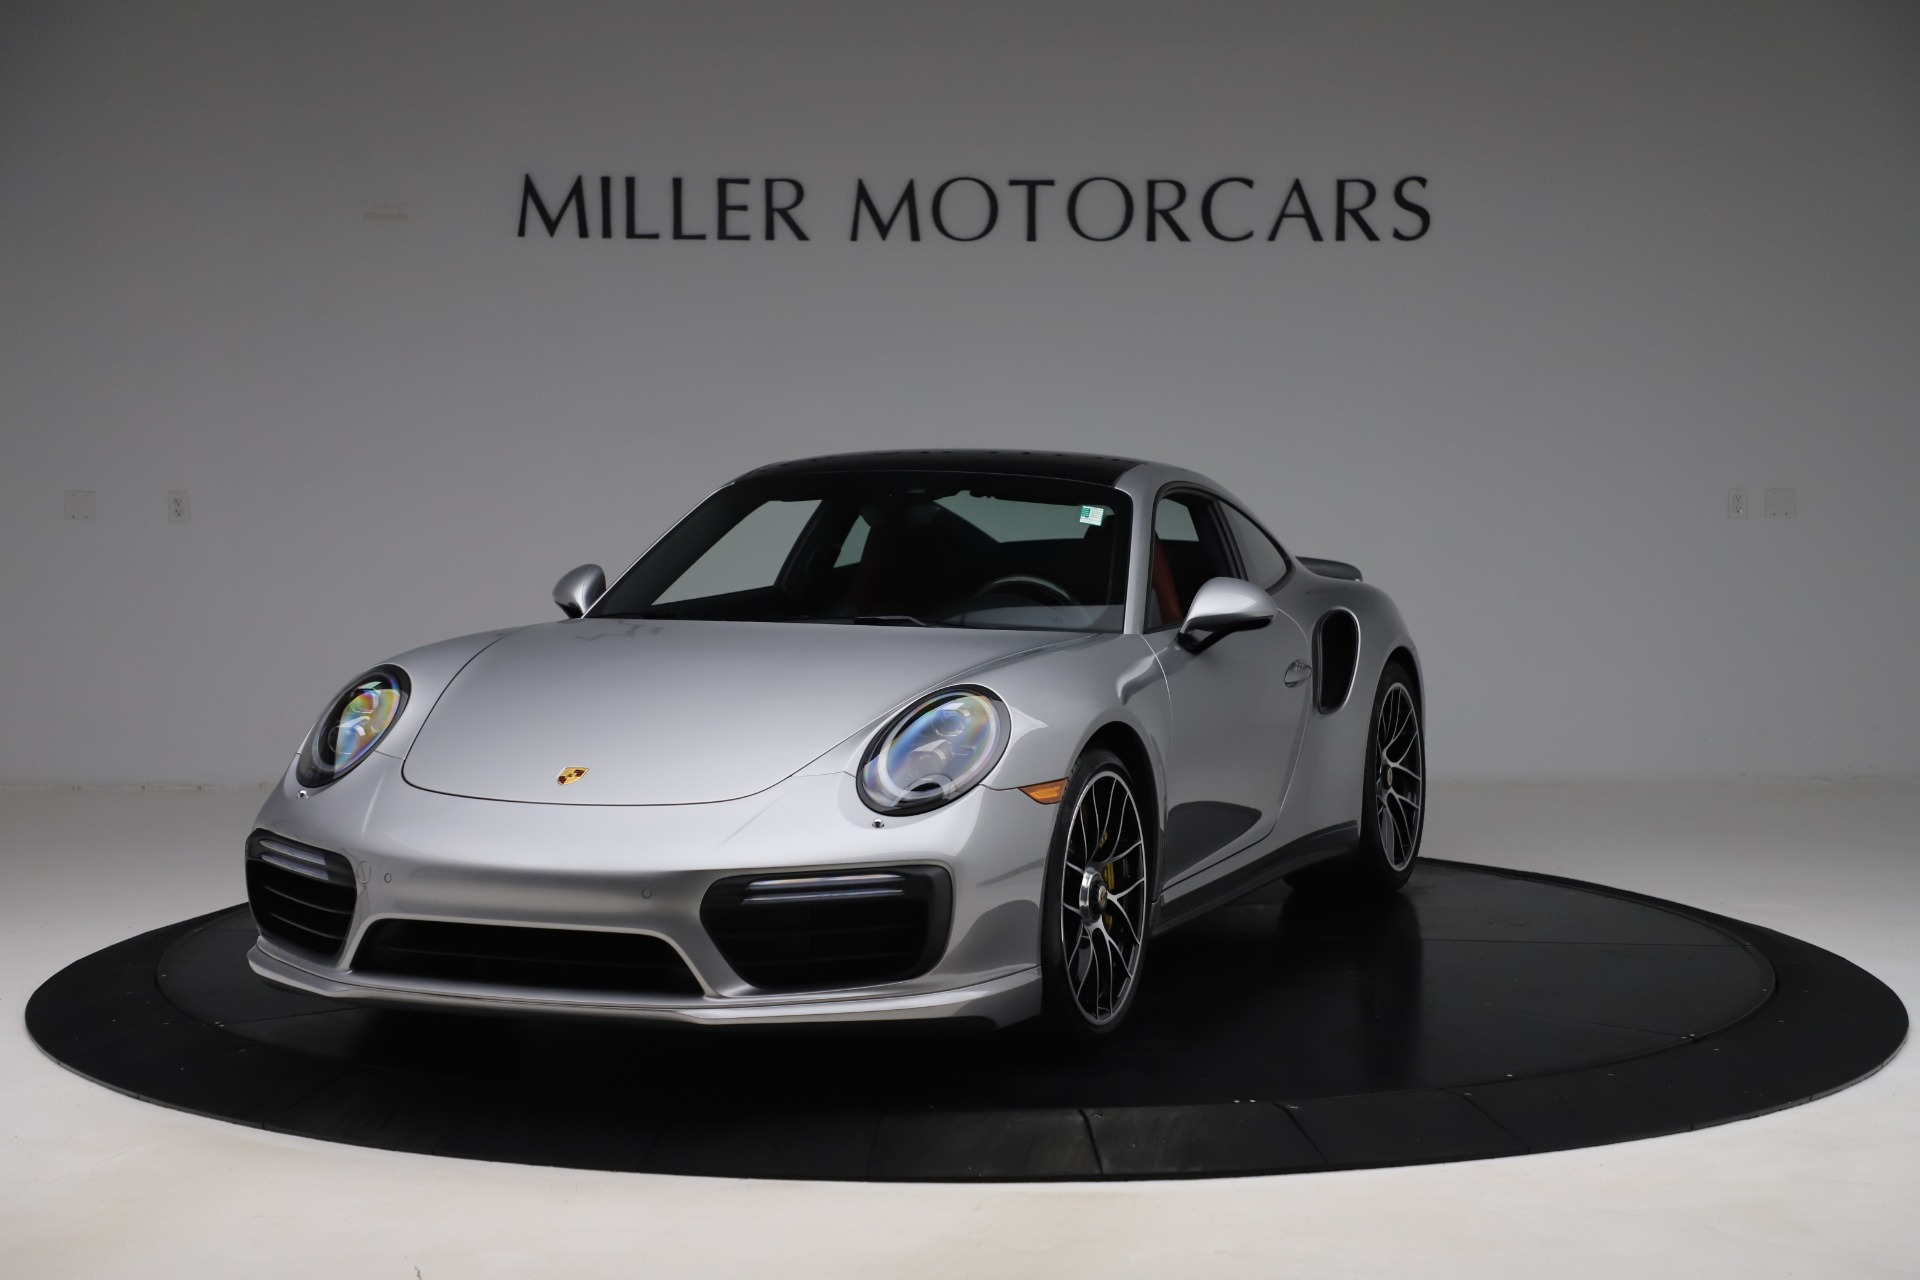 Used 2017 Porsche 911 Turbo S for sale $154,900 at Bentley Greenwich in Greenwich CT 06830 1